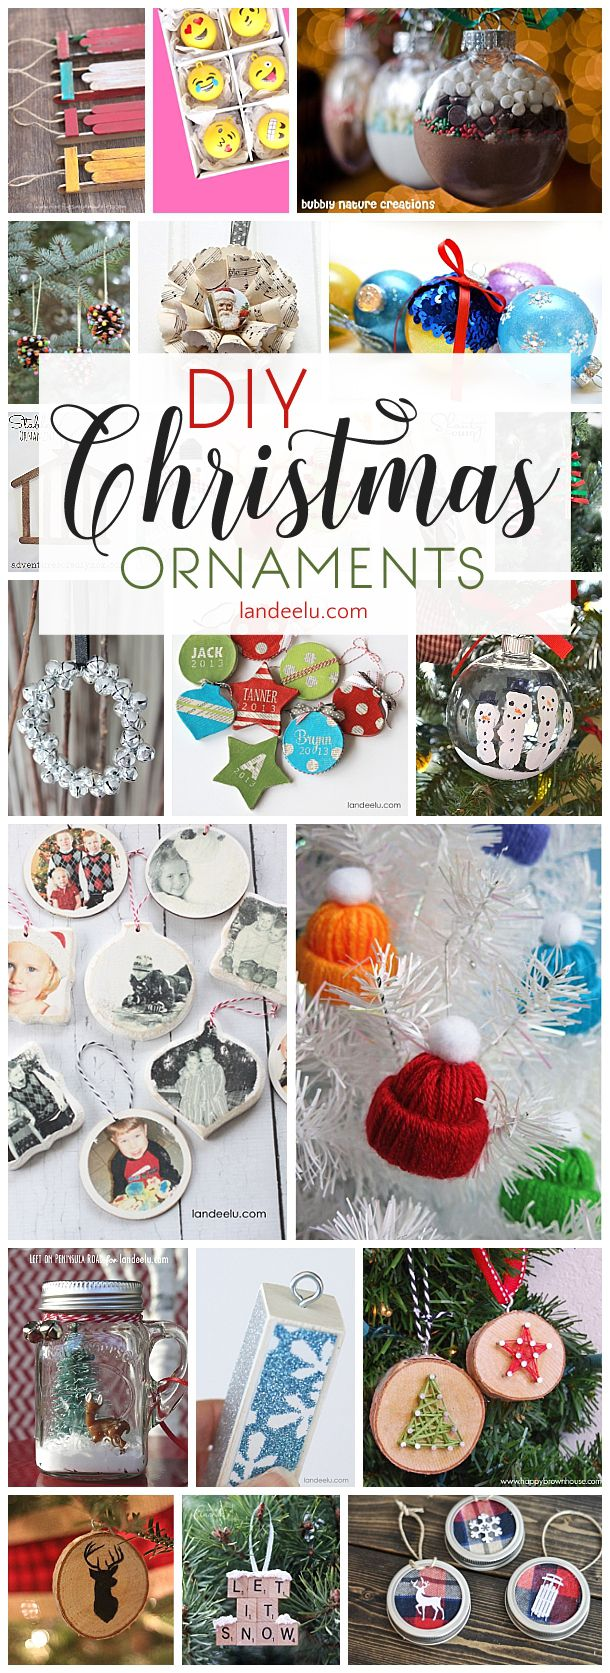 Have a beautiful handmade Christmas with these DIY Christmas ornaments! DIY Christmas Ornaments to Make for a festive do it yourself Holiday! Cheap, Easy and so Pretty on your Christmas Tree this year!